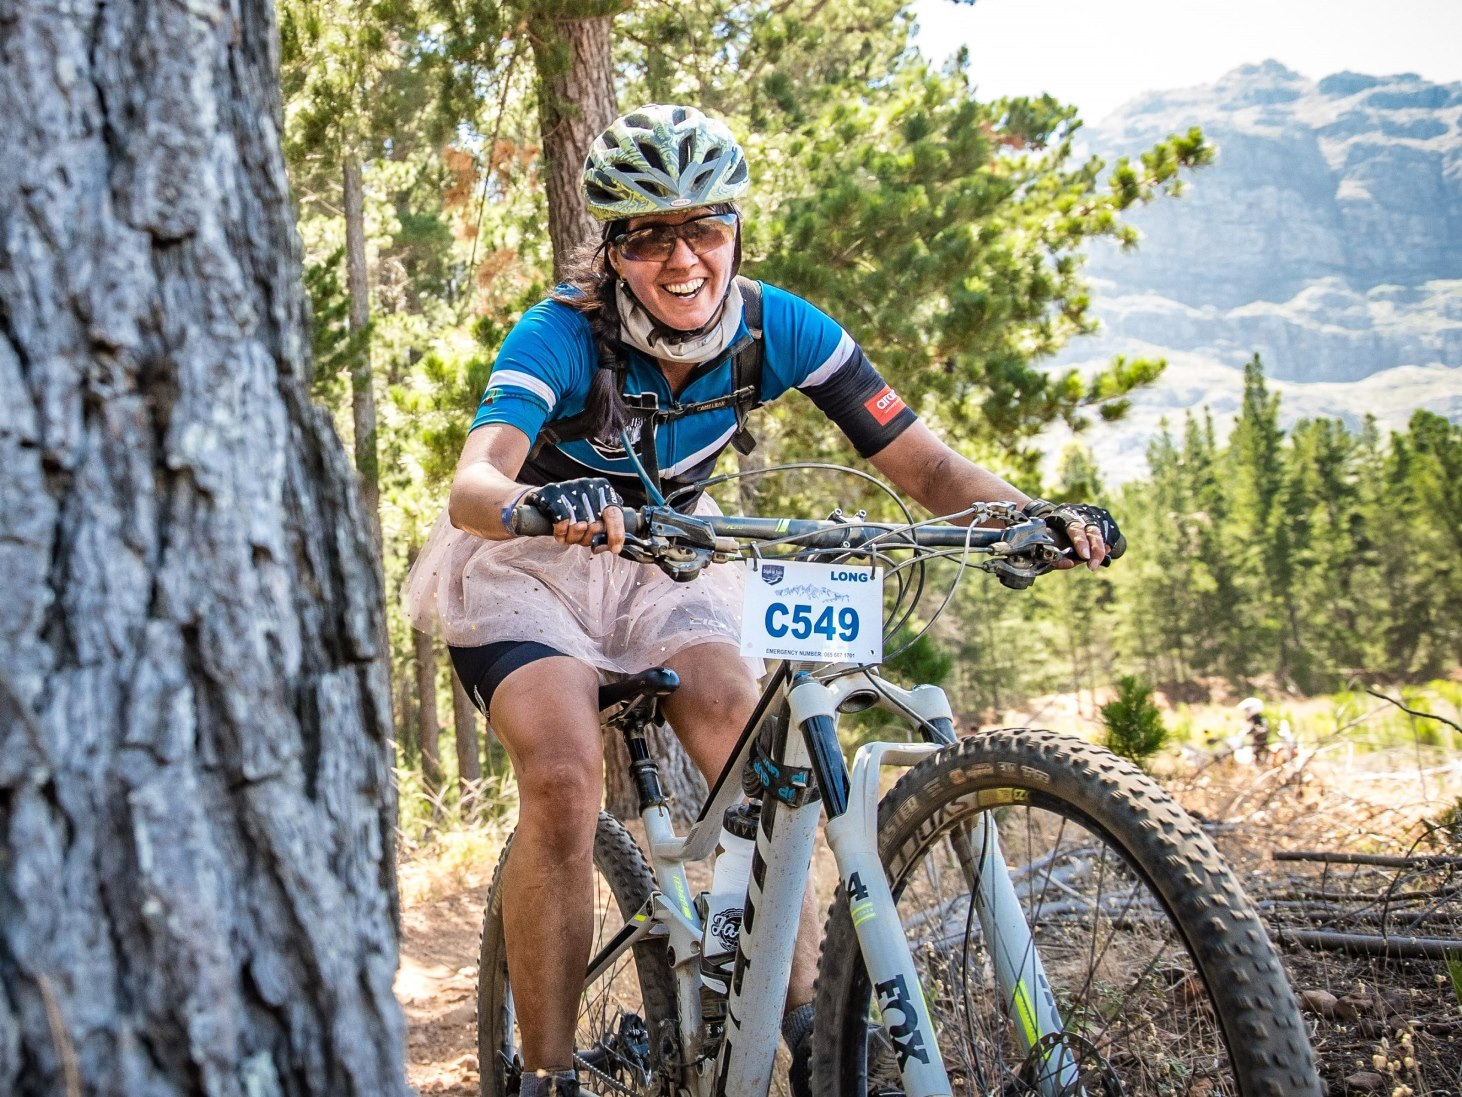 Entries are open for 7th annual Origin Of Trails MTB Experience